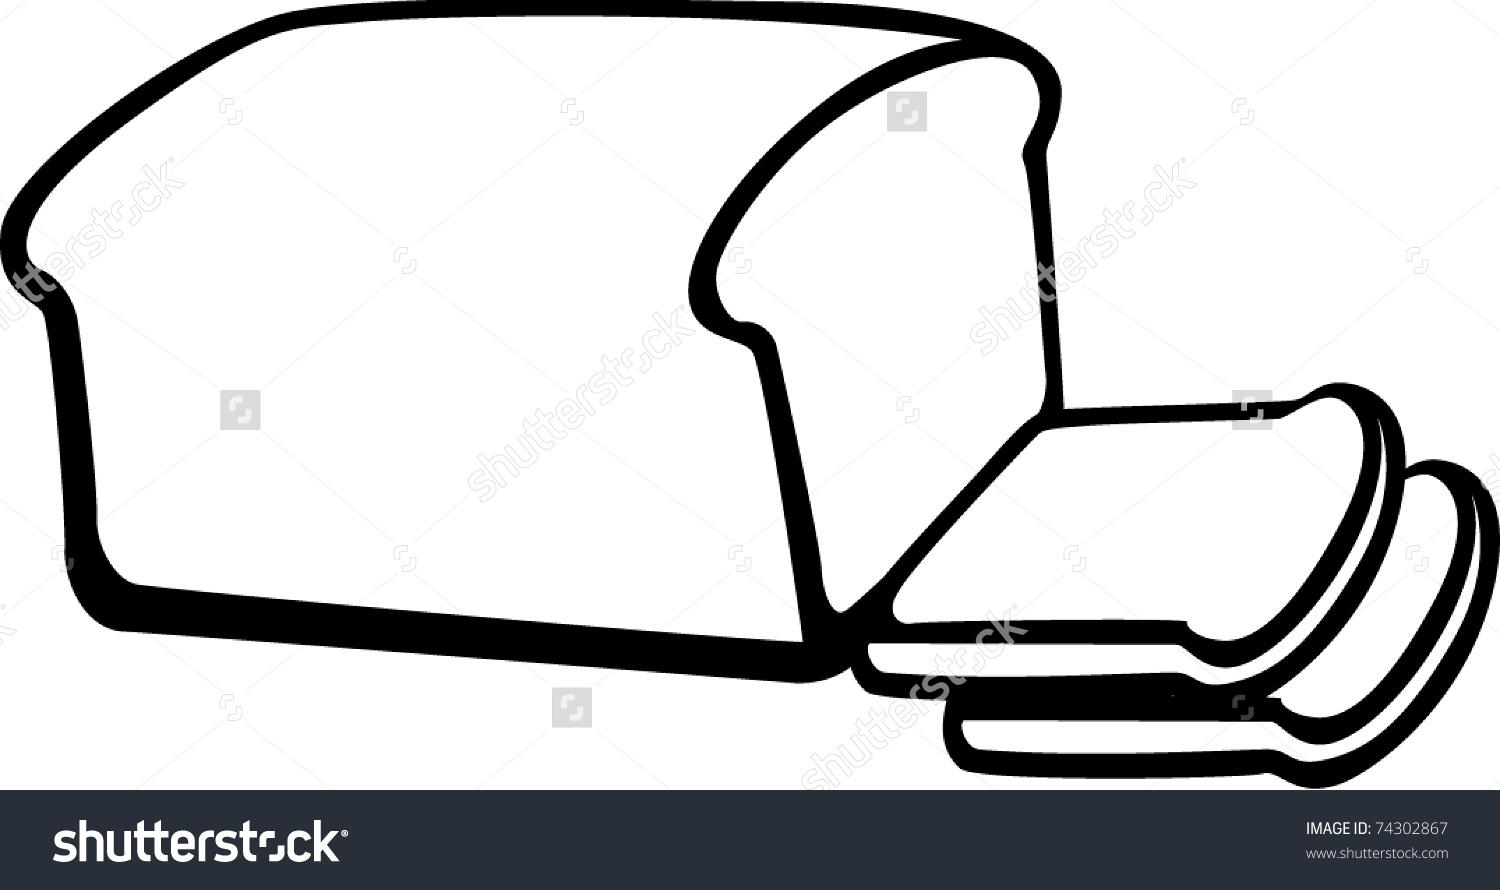 Loaf Clipart Black And White Loaf Clipart Clipground